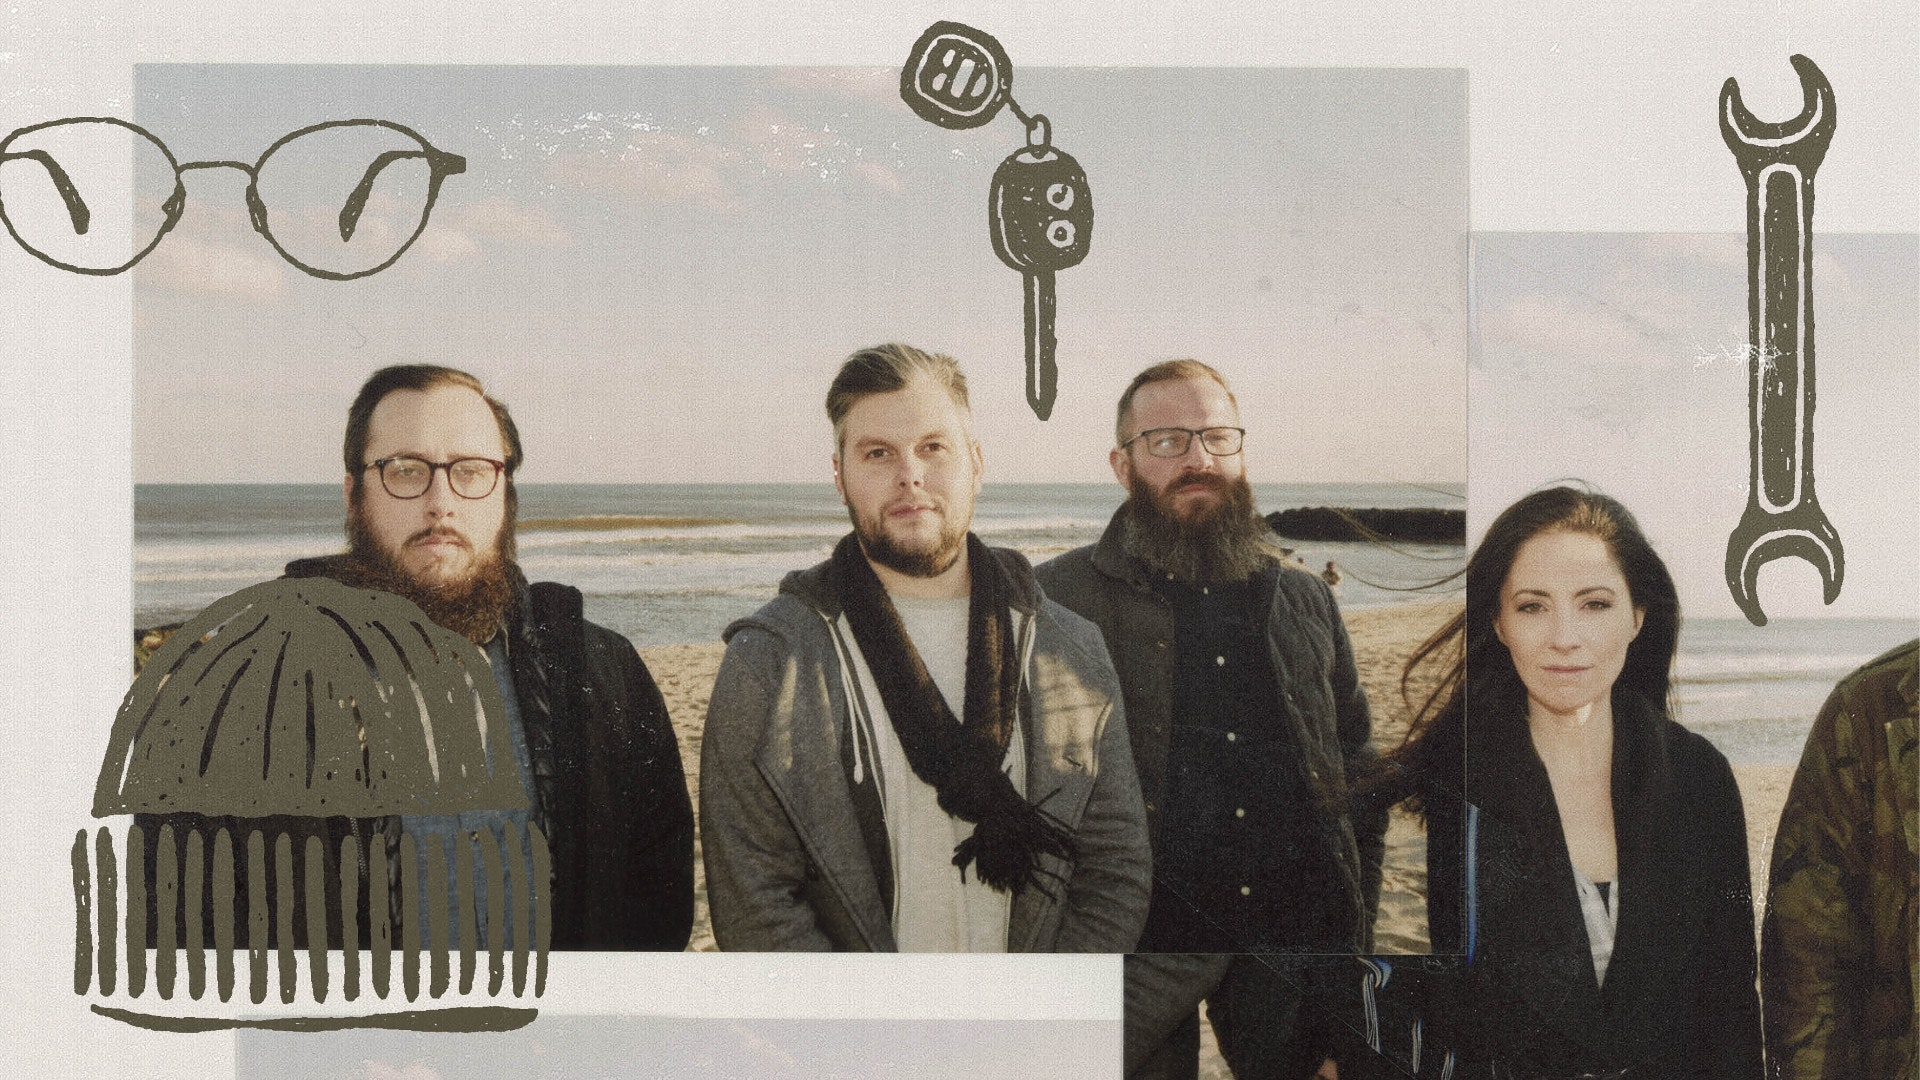 Aaron West + The Roaring Twenties